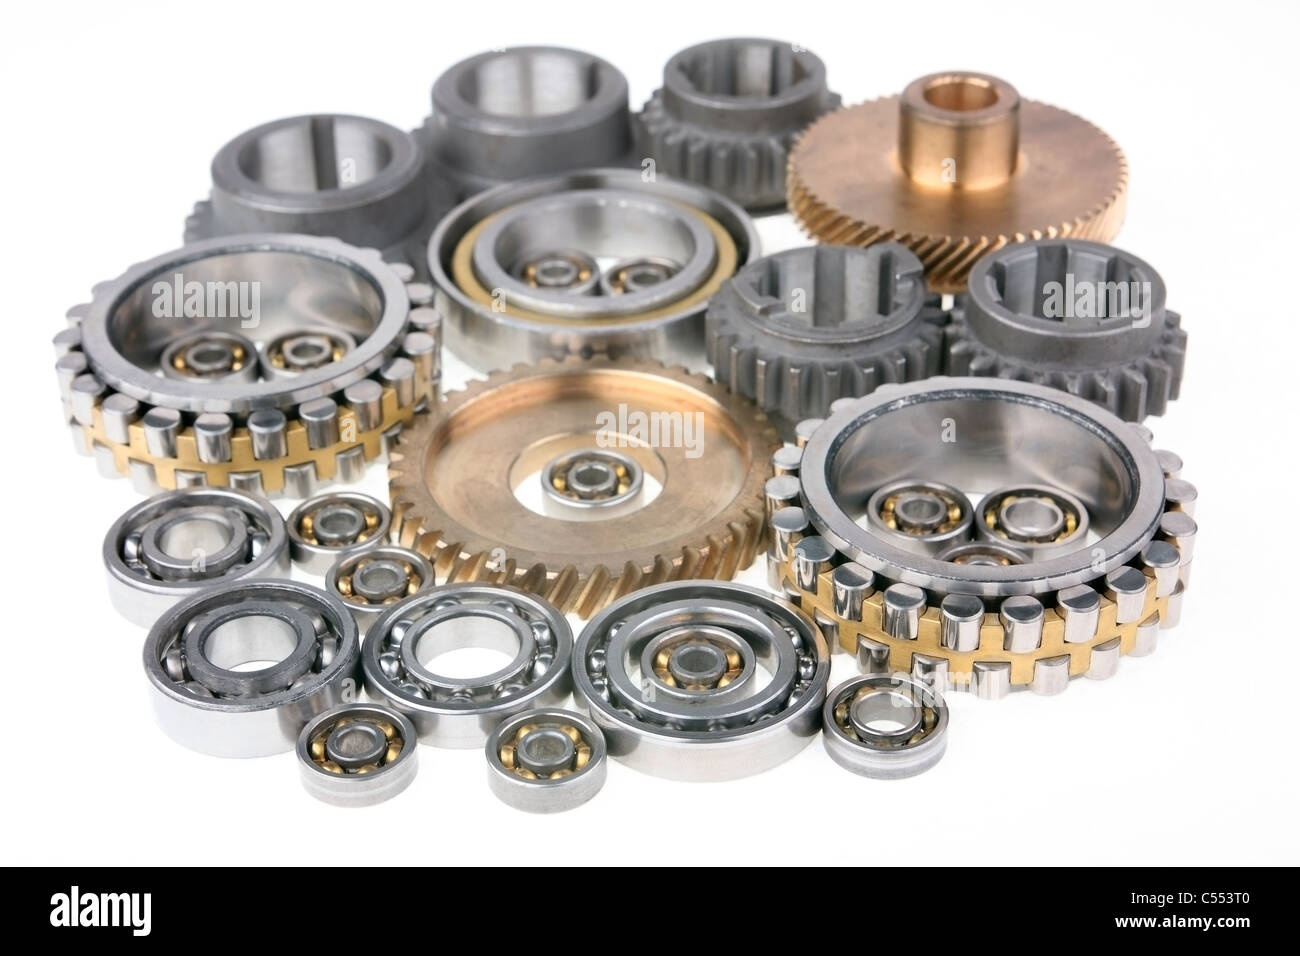 This photo shows the gears and bearings on white background - Stock Image